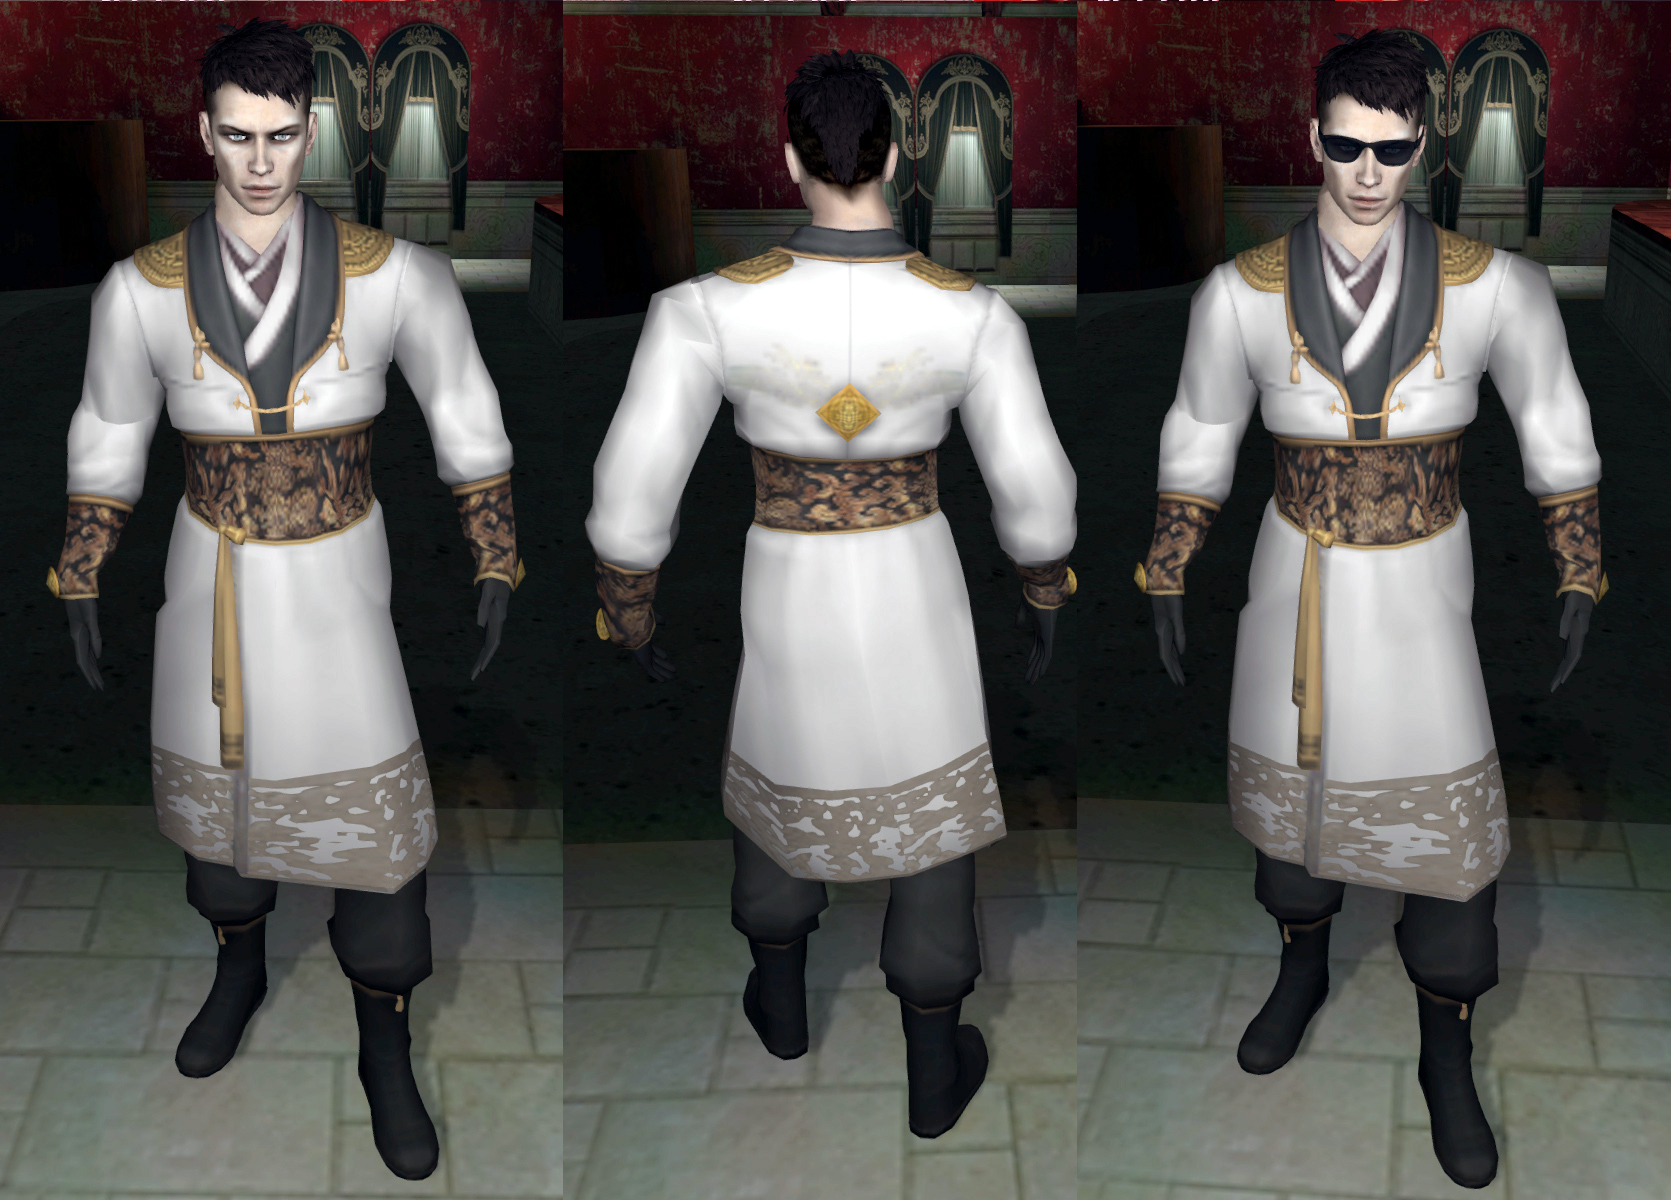 Robed dude with and without sunglasses